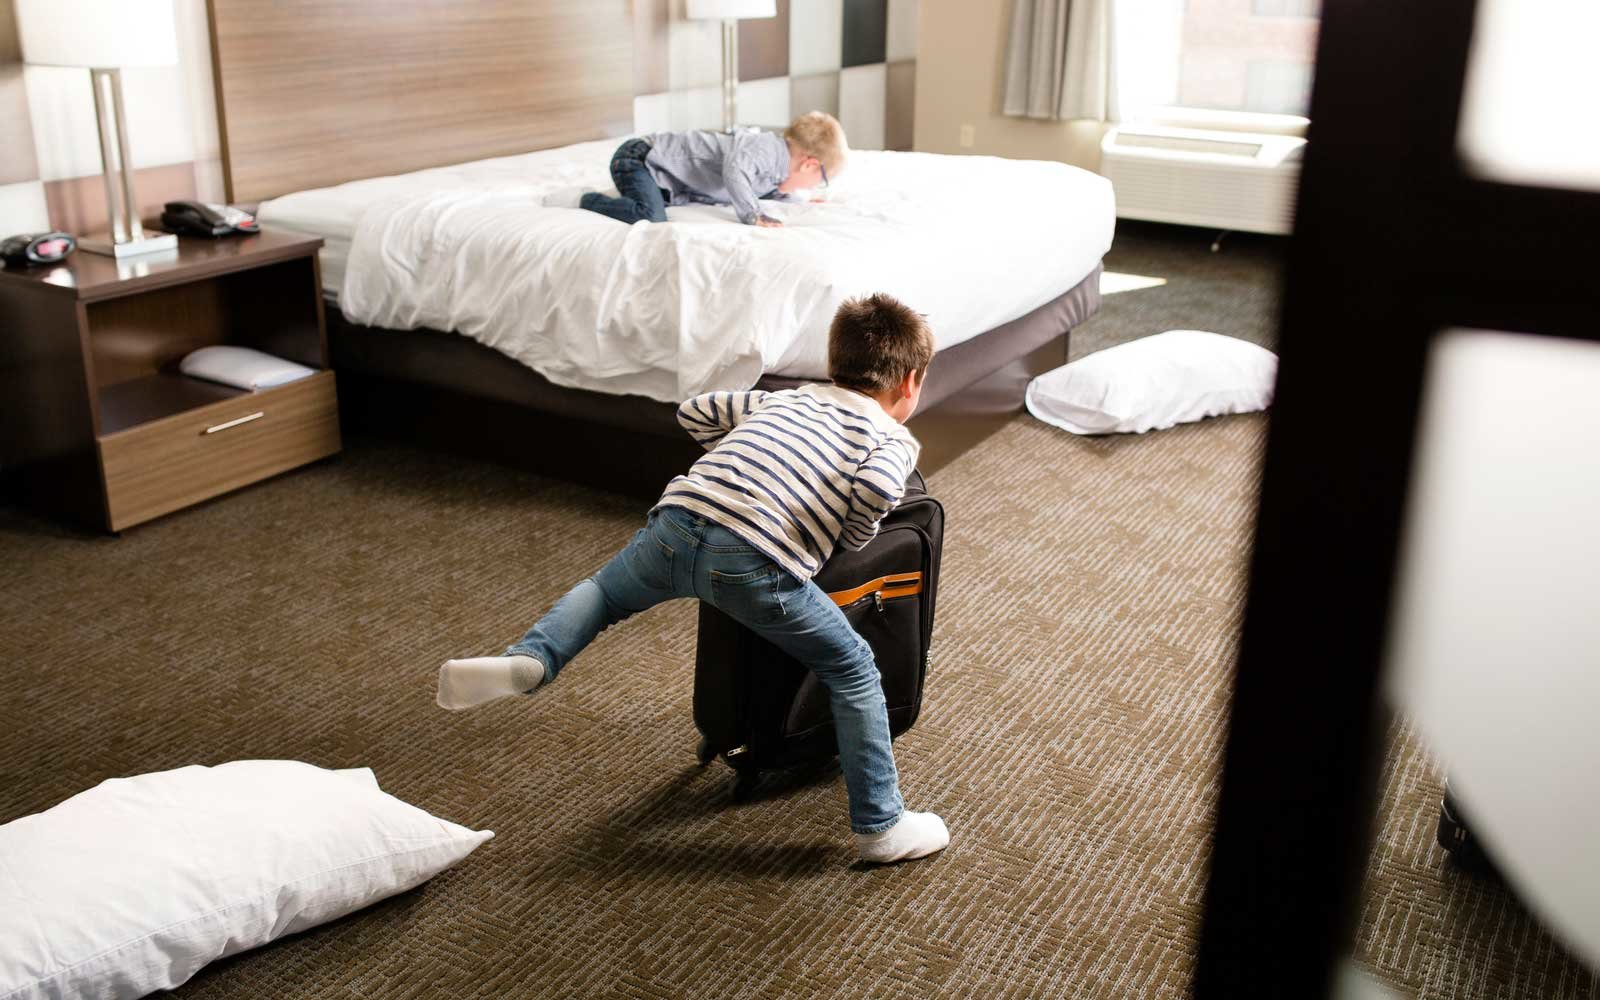 Two boys play in a hotel room.